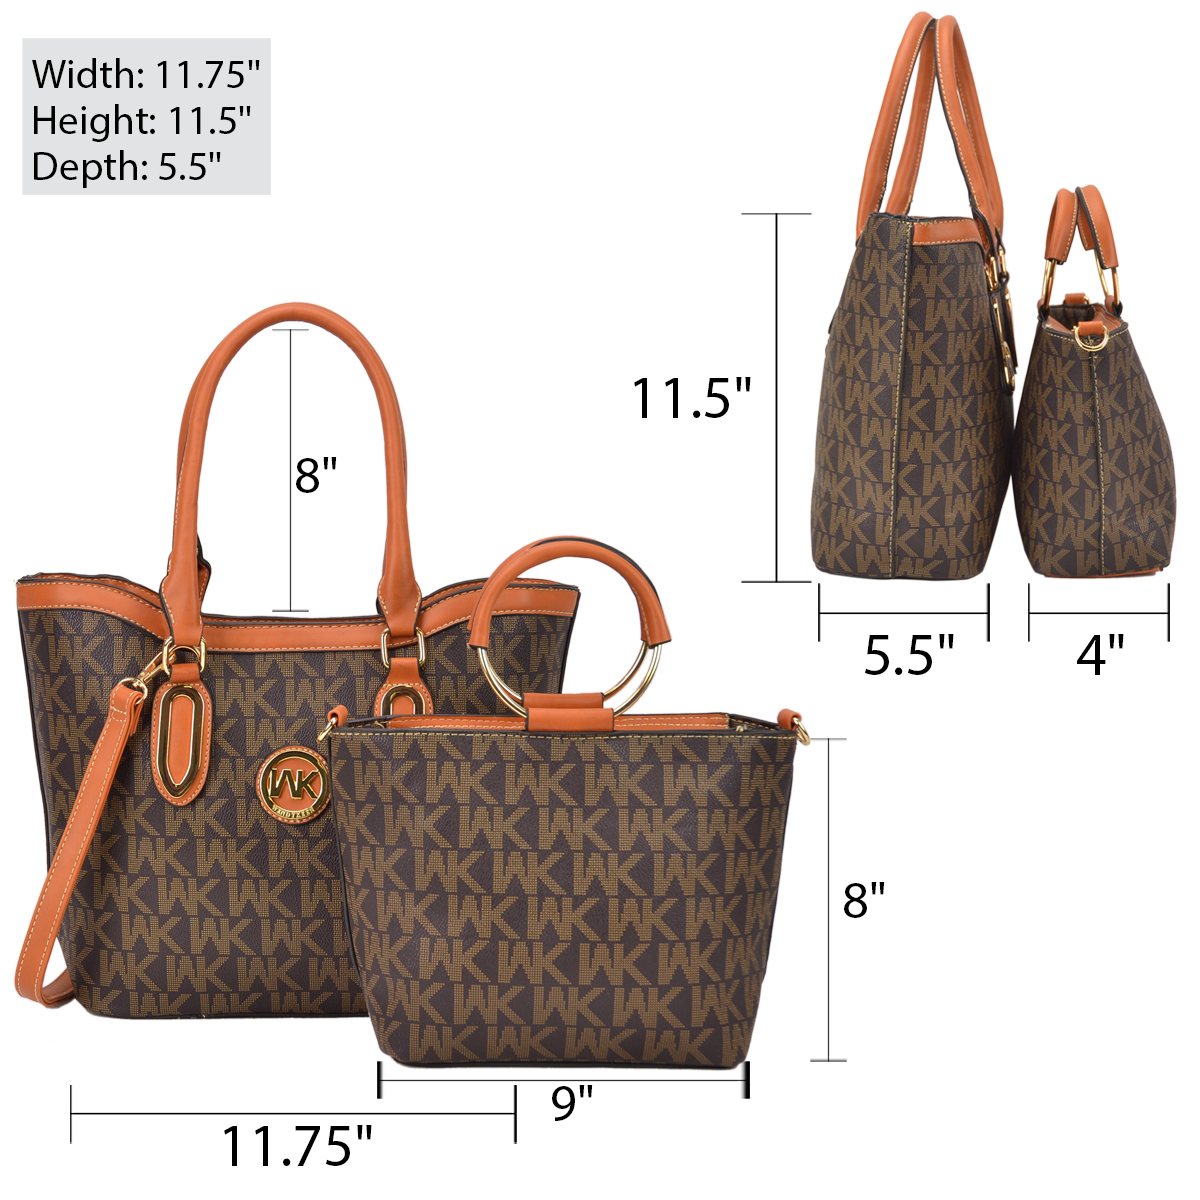 Wendy Keen Two-in-One Monogram Medium Tote